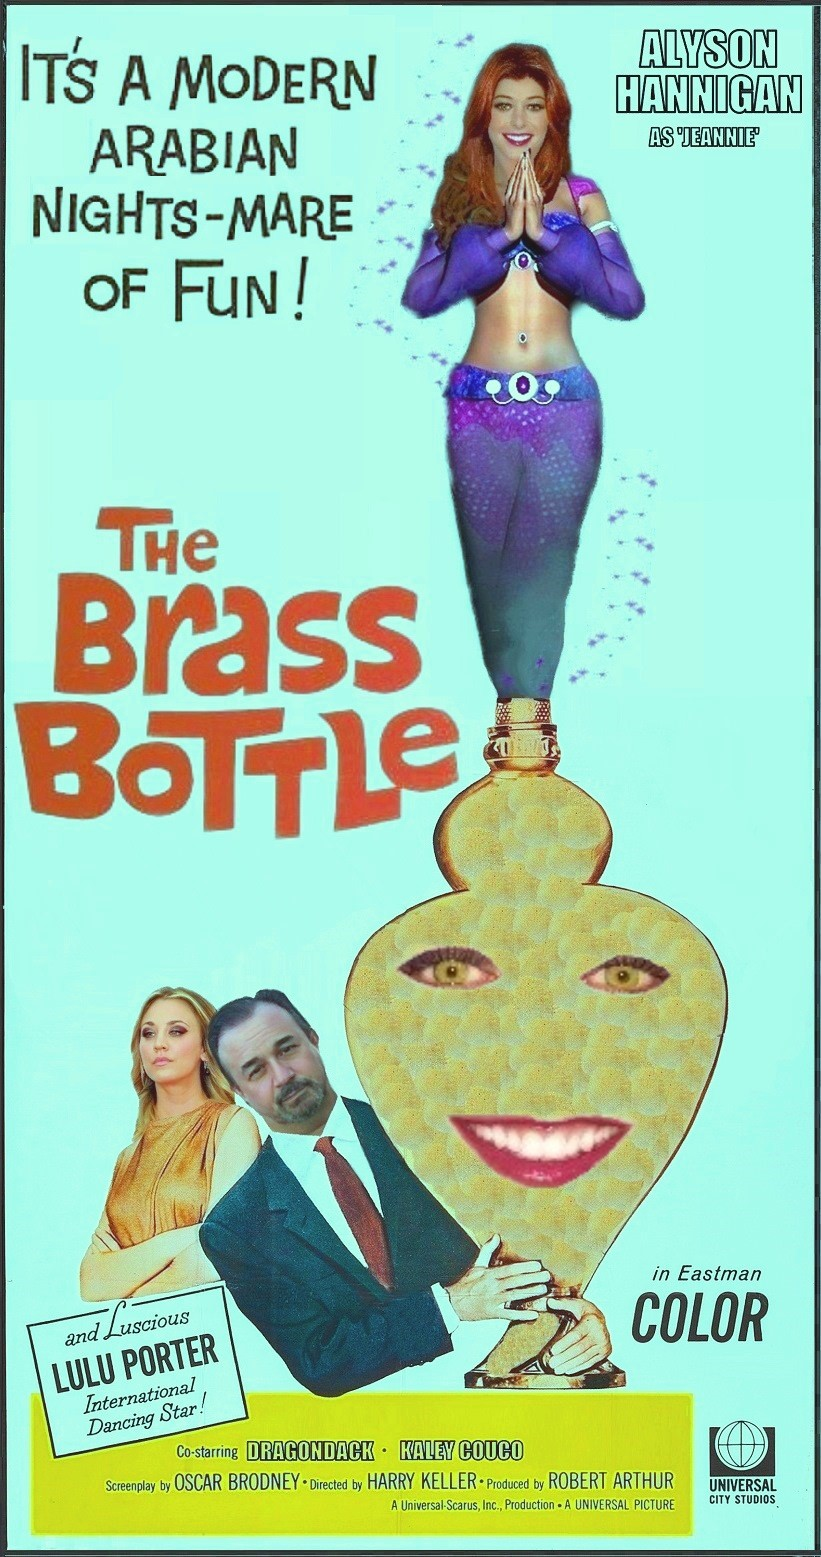 DDJJ: 'The Brass Bottle' Starring Alyson Hannigan